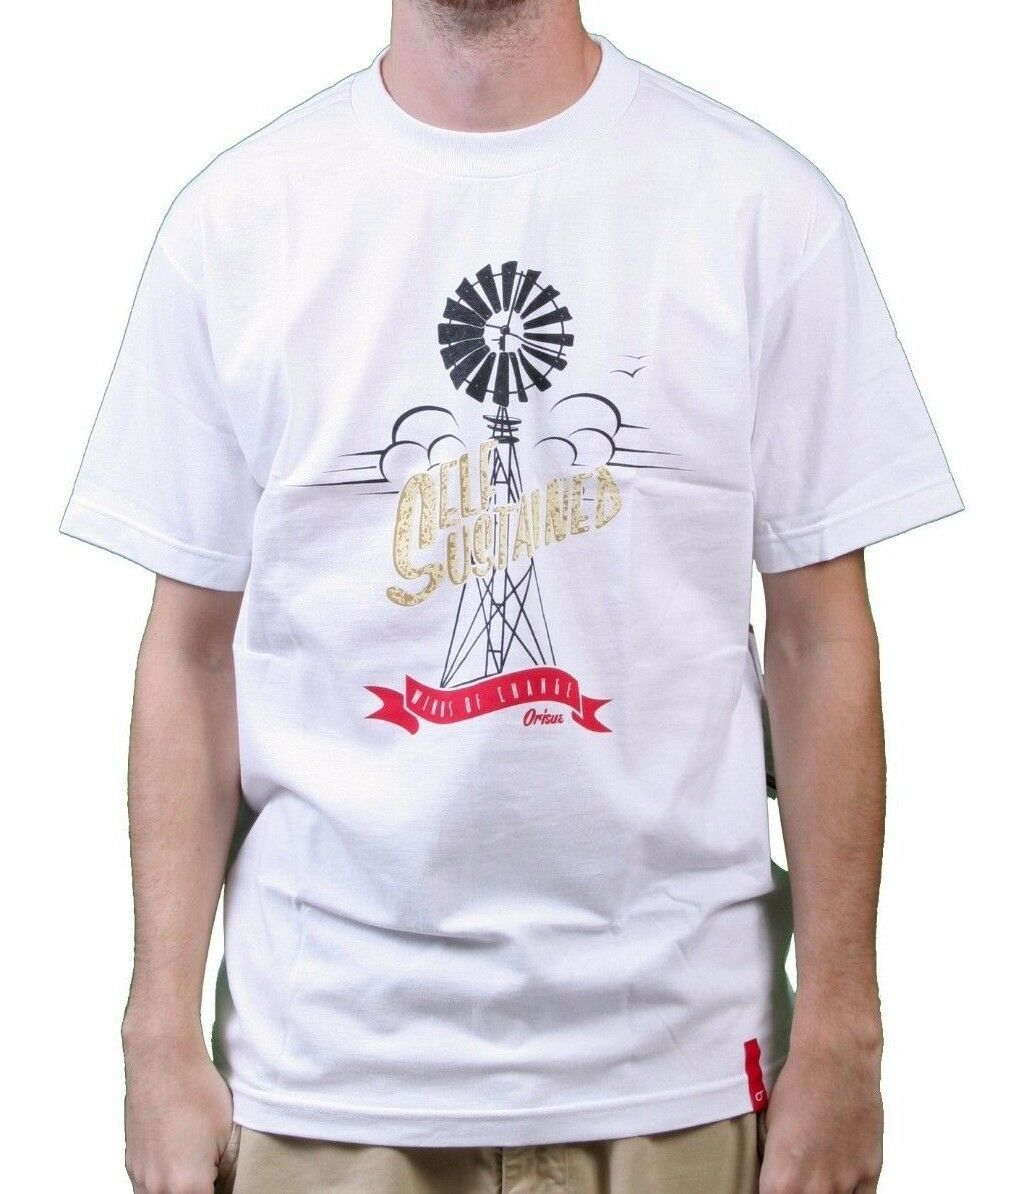 Orisue Mens White Self Sustained Winds of Change Windmill T-Shirt NWT